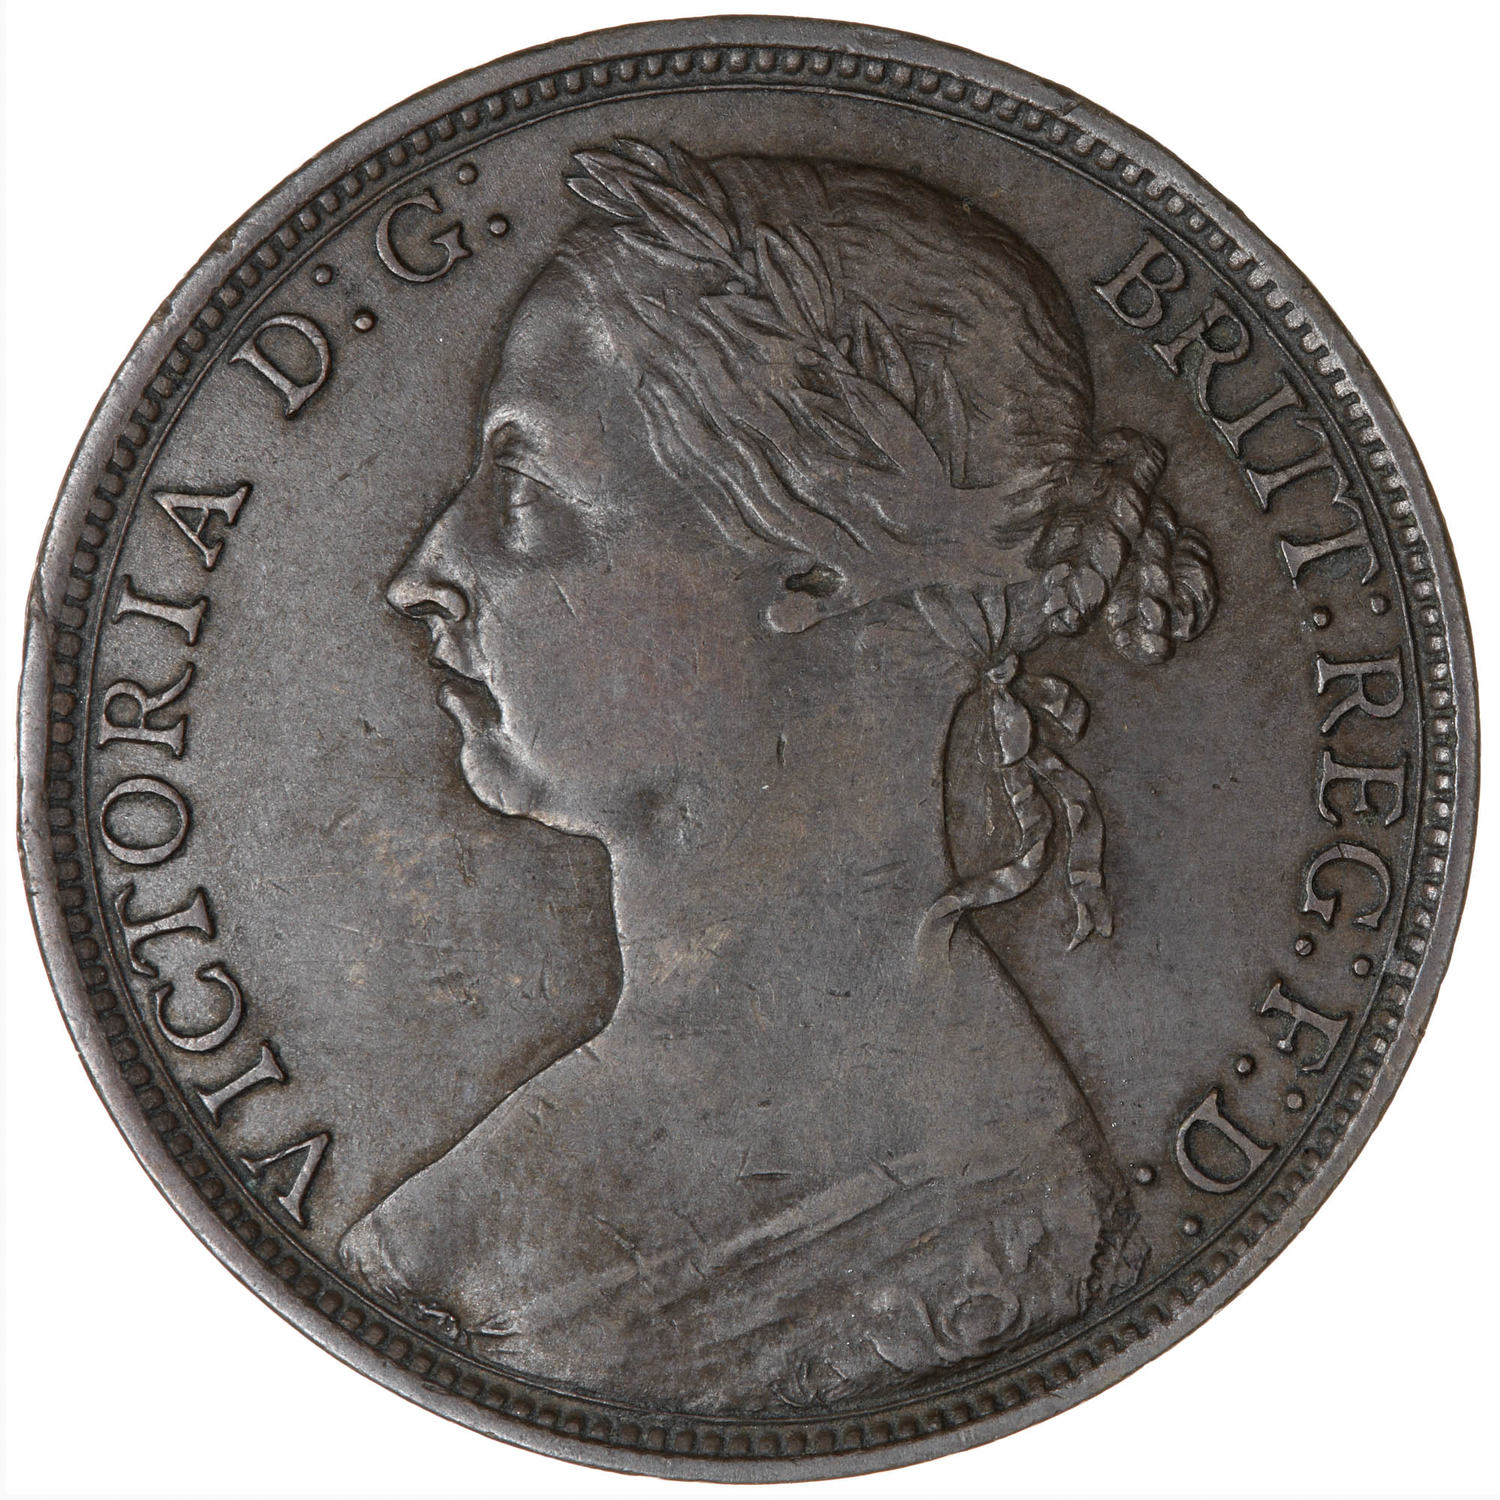 Penny 1890: Photo Coin - Penny, Queen Victoria, Great Britain, 1890